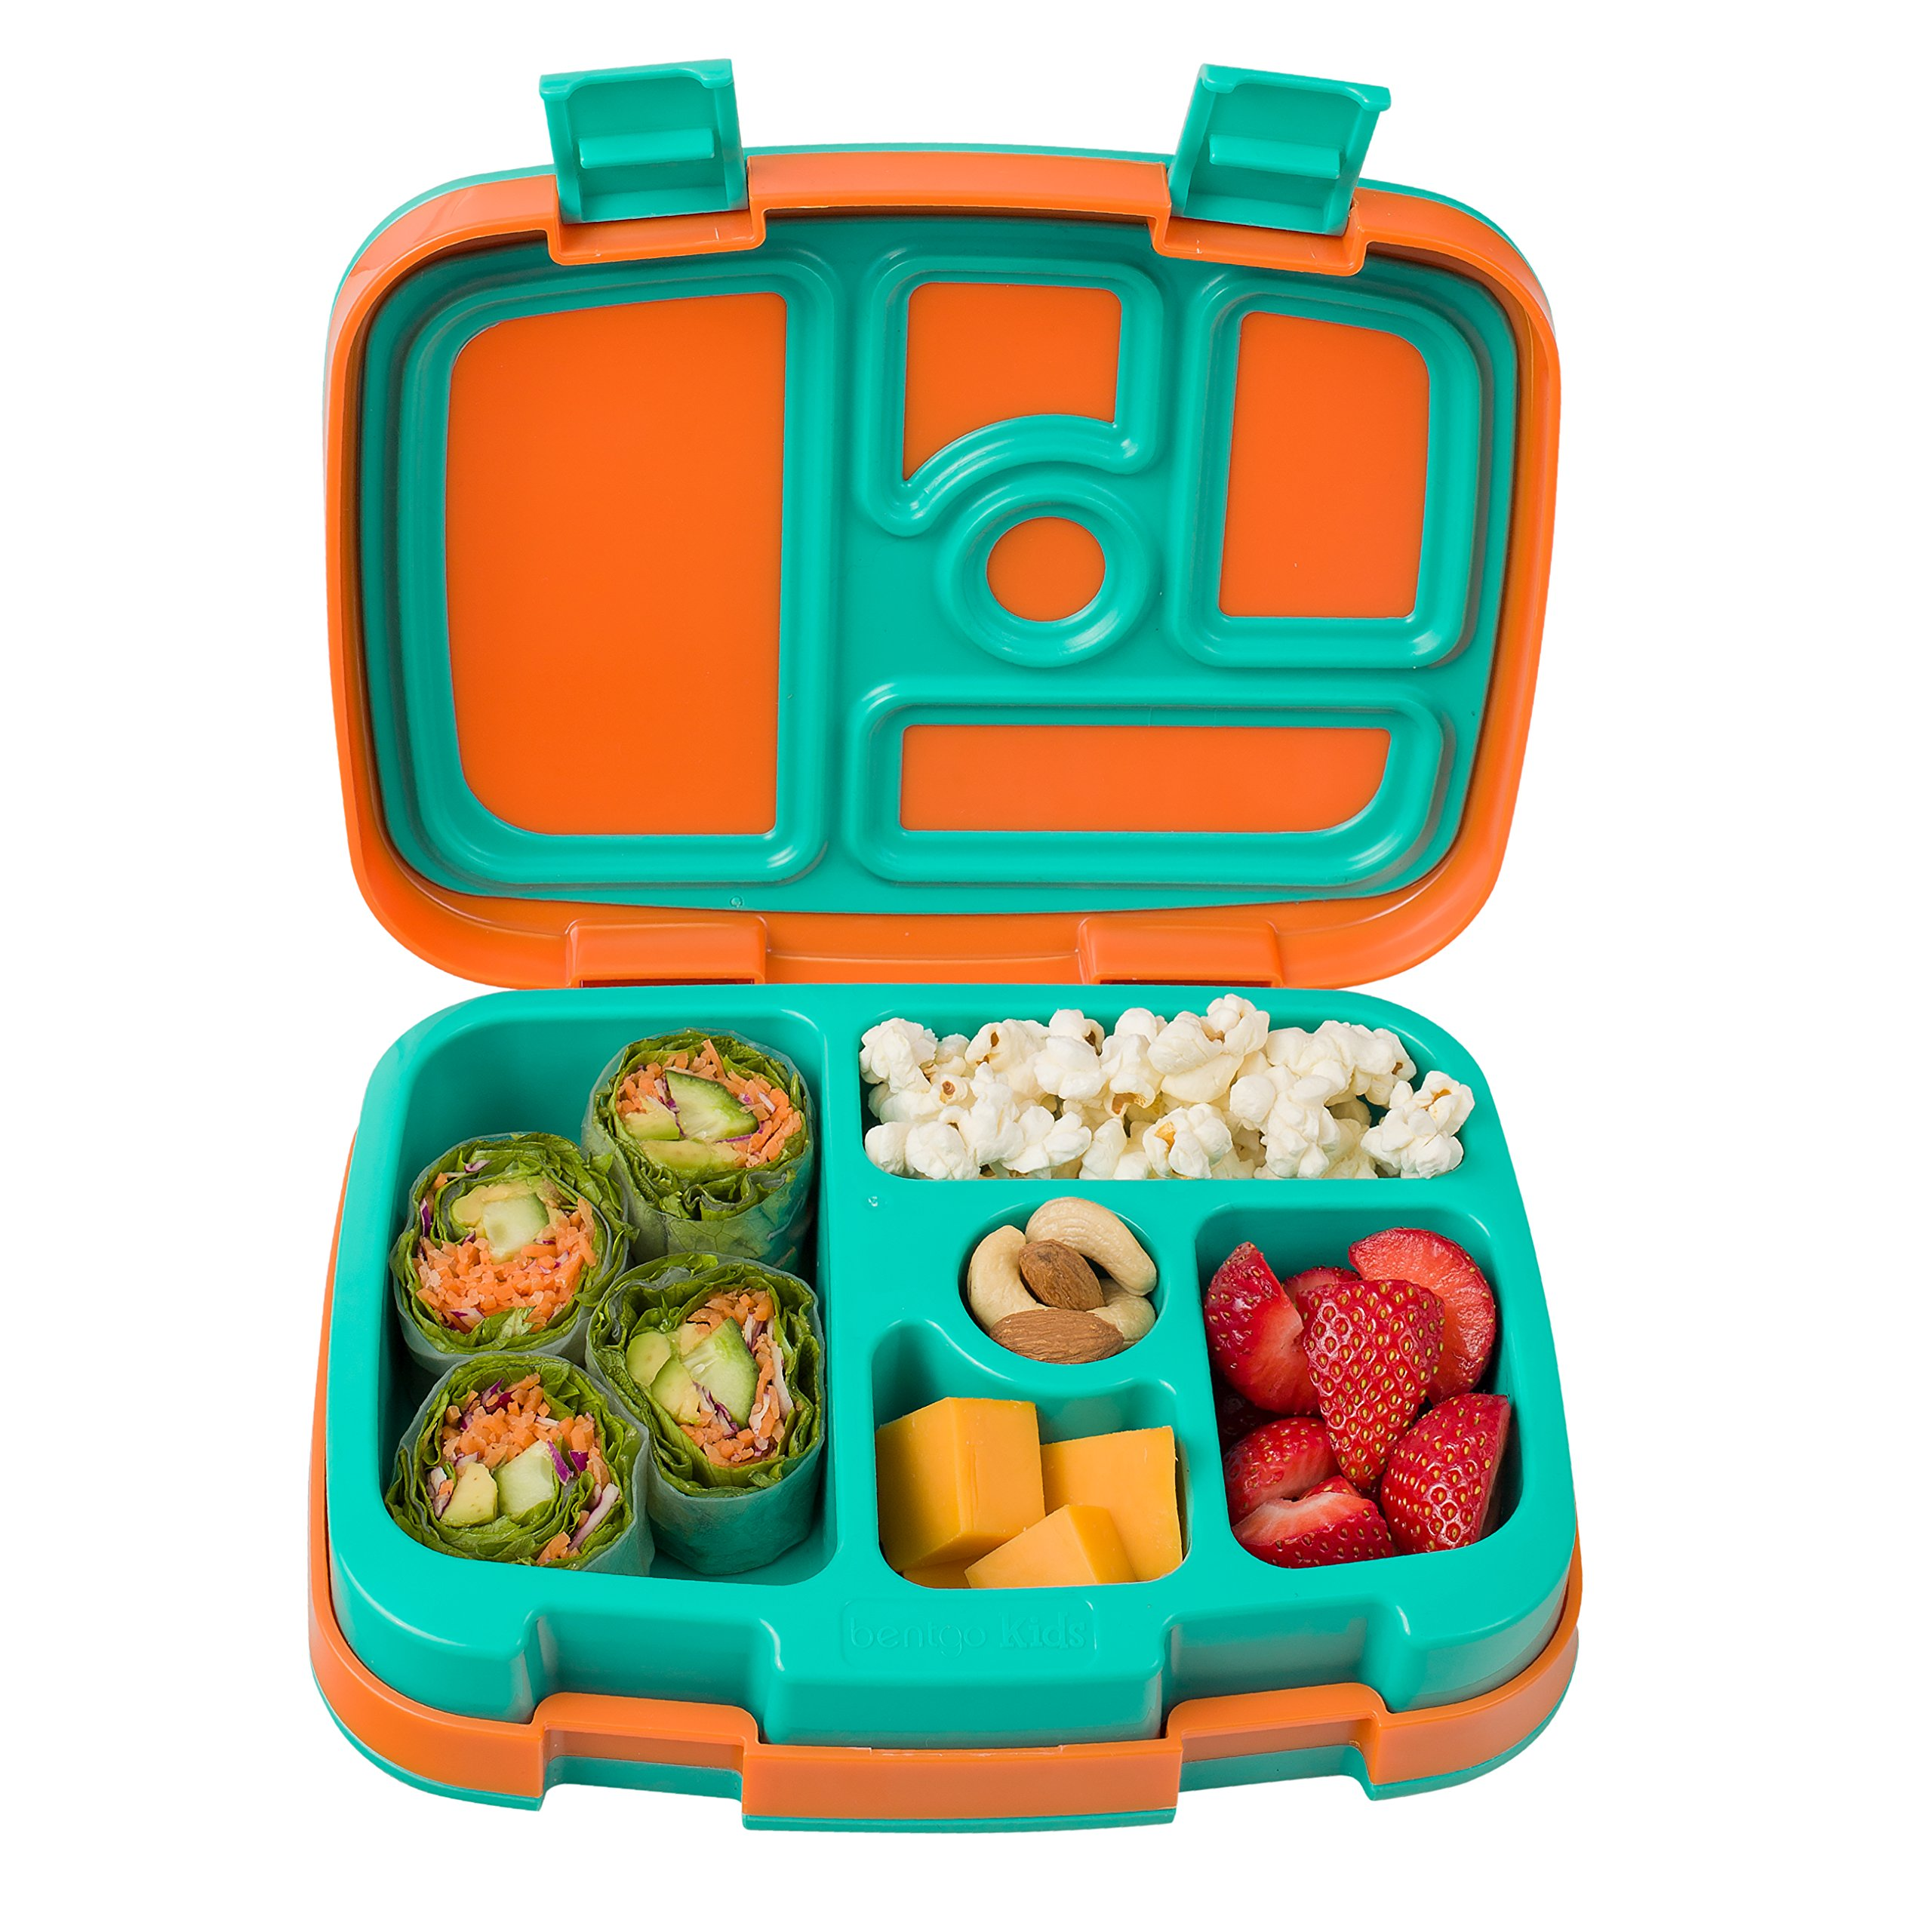 Bentgo Kids Brights – Leak-Proof, 5-Compartment Bento-Style Kids Lunch Box – Ideal Portion Sizes for Ages 3 to 7 – BPA-Free and Food-Safe Materials (Orange)